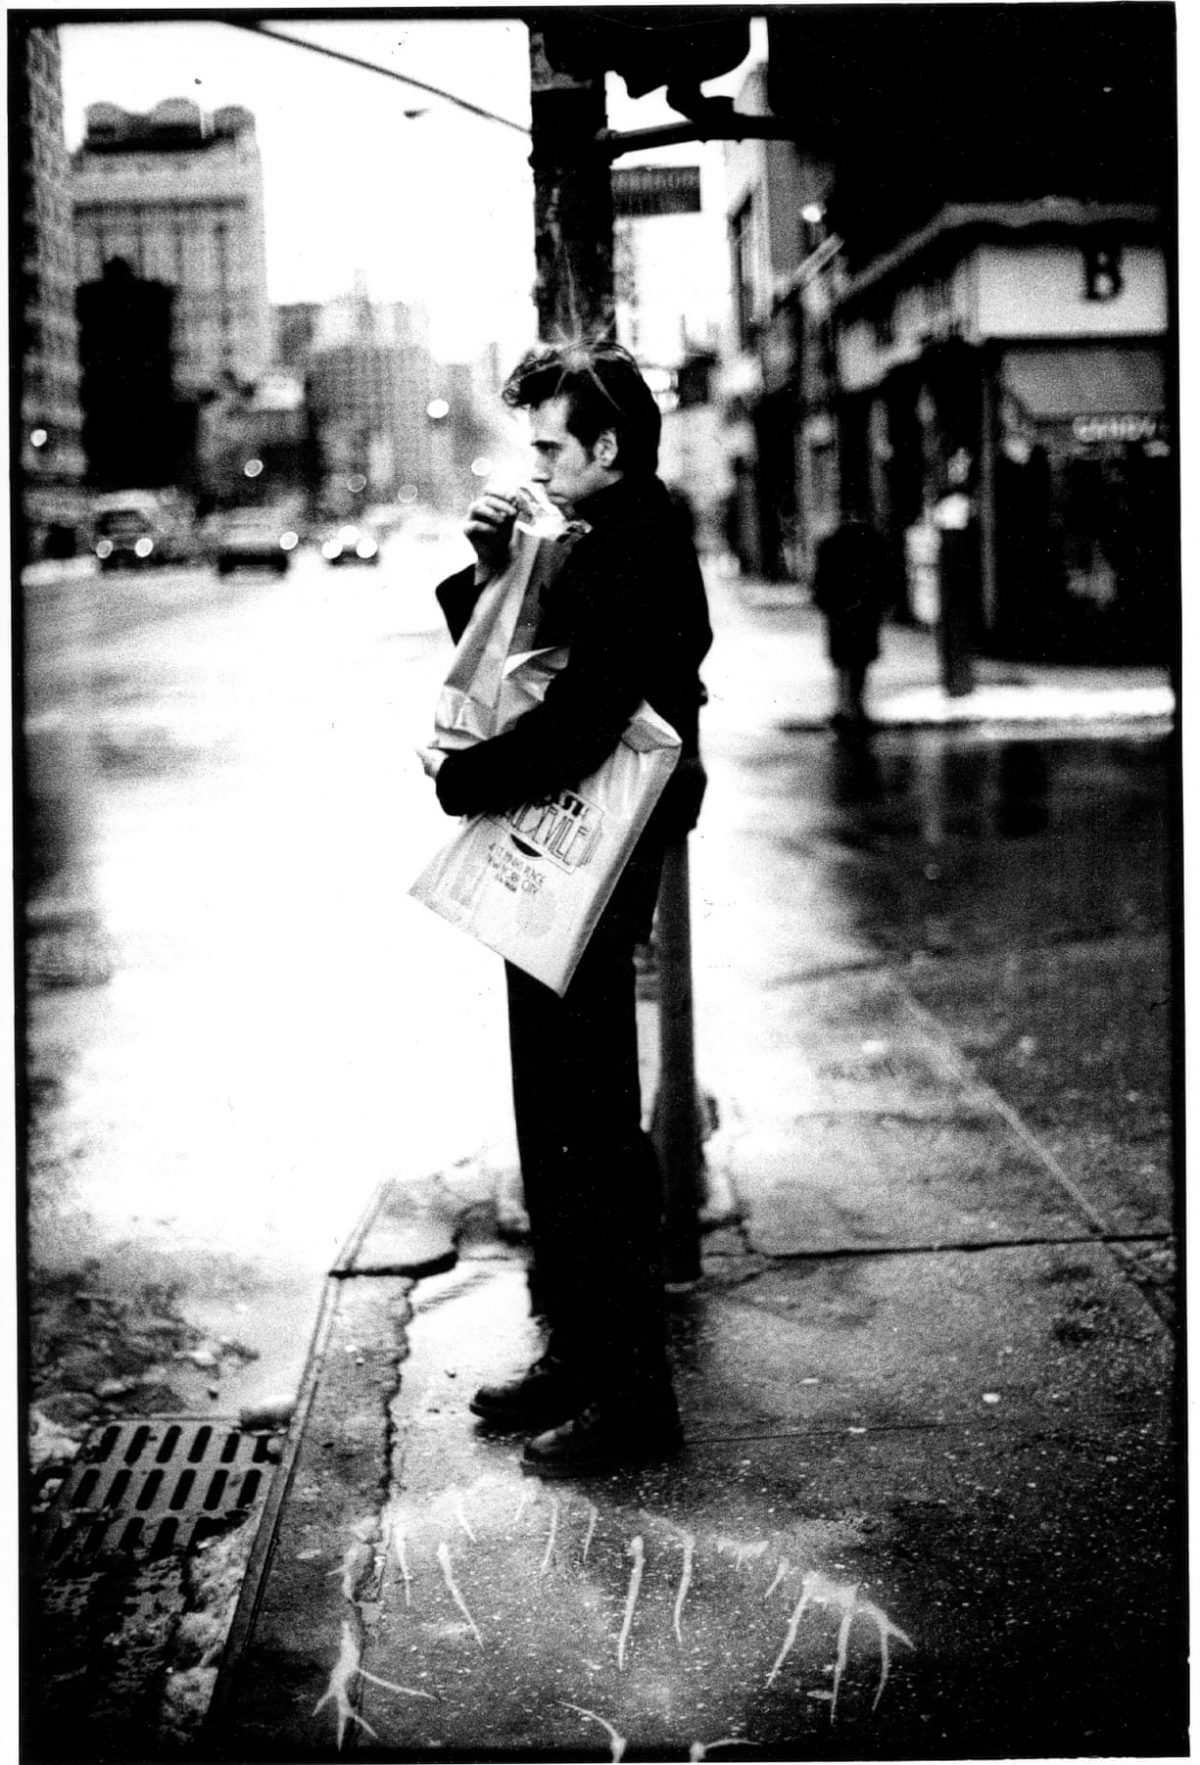 Mick Jones standing on a New York streetcorner